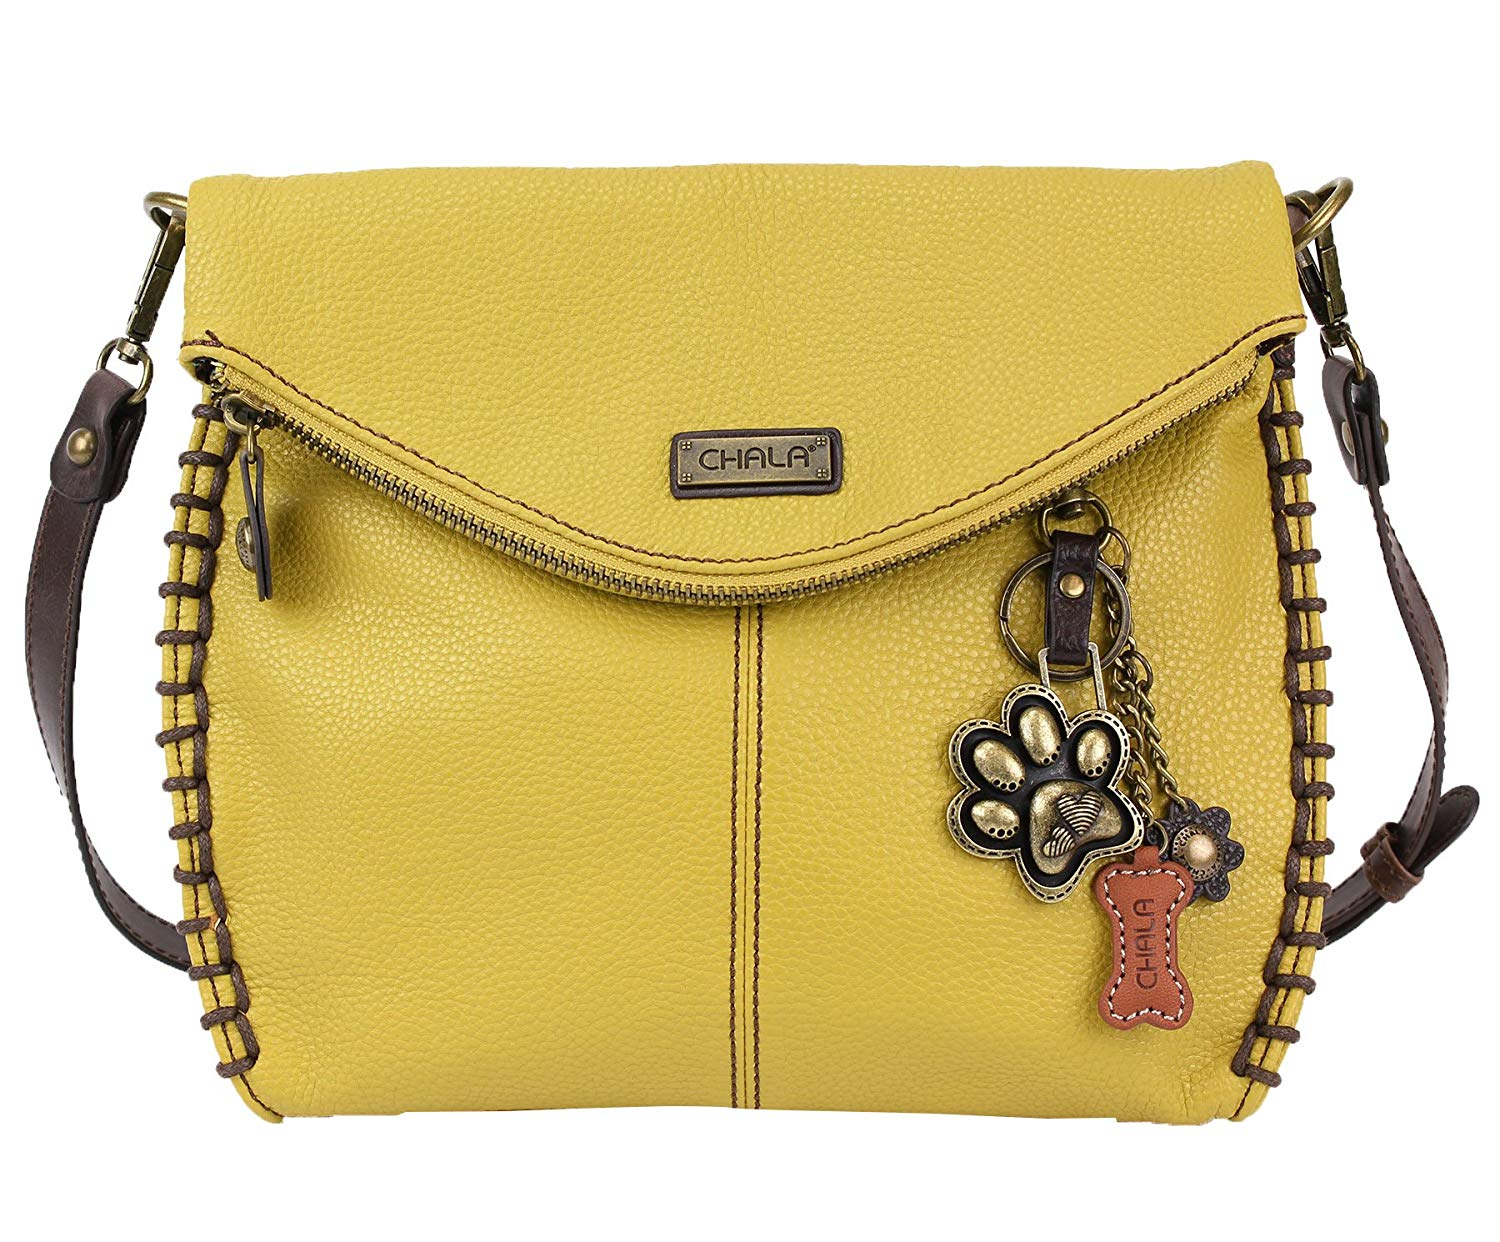 64ade437e5b4 Chala Charming Crossbody Bag With Flap Top